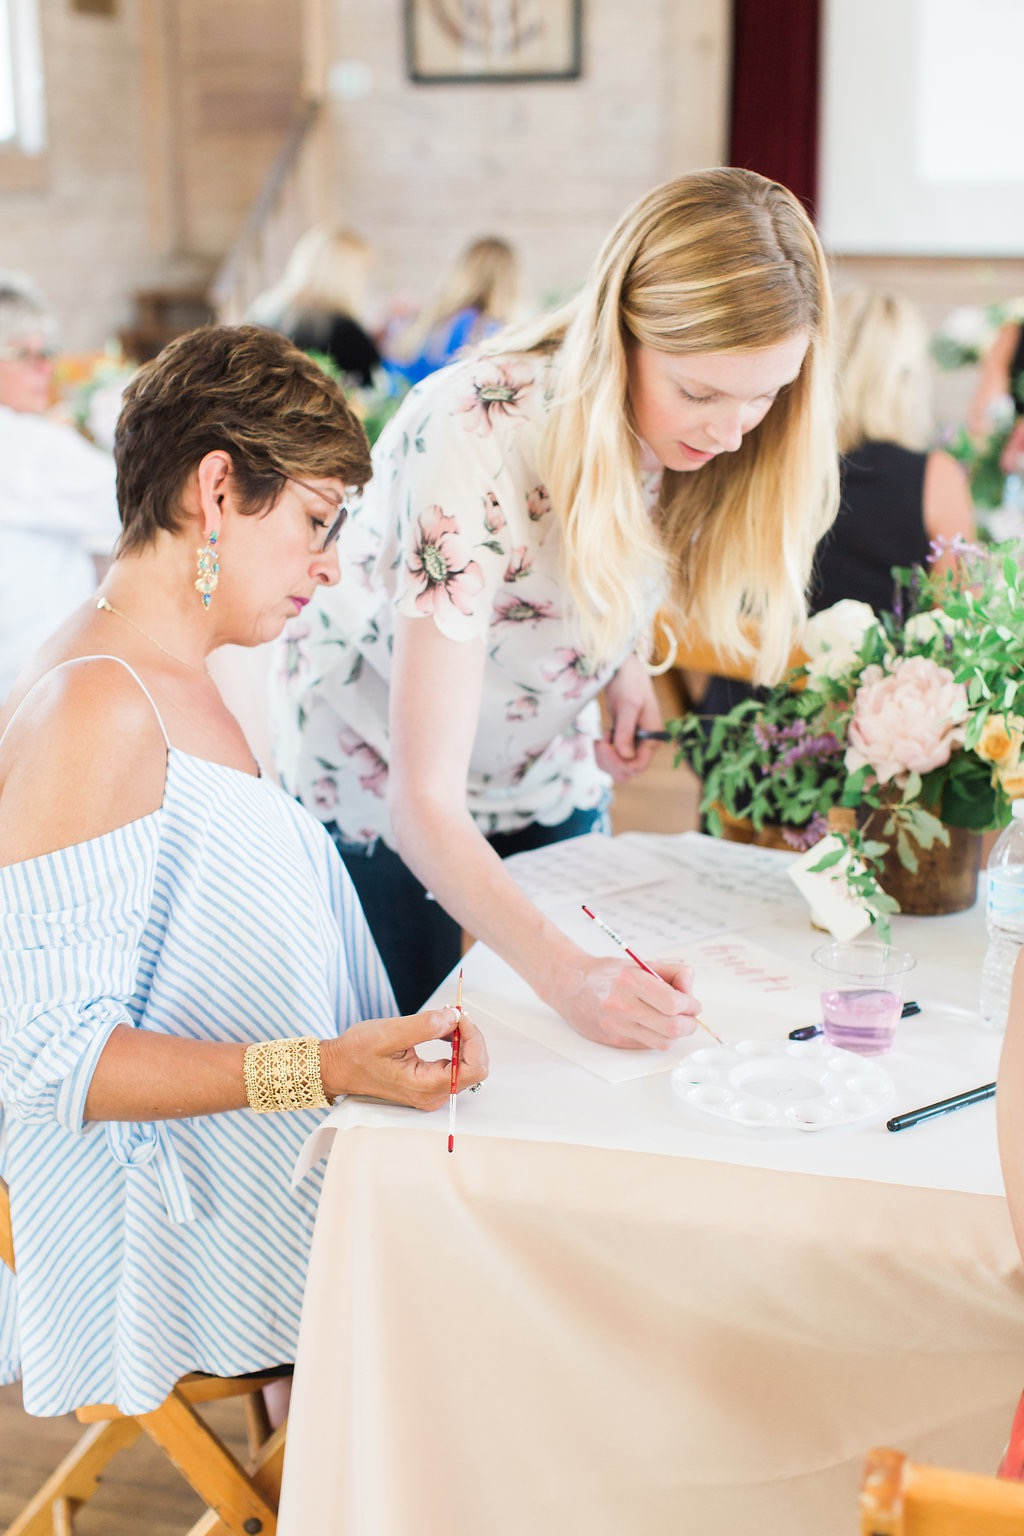 sable and gray calligraphy class